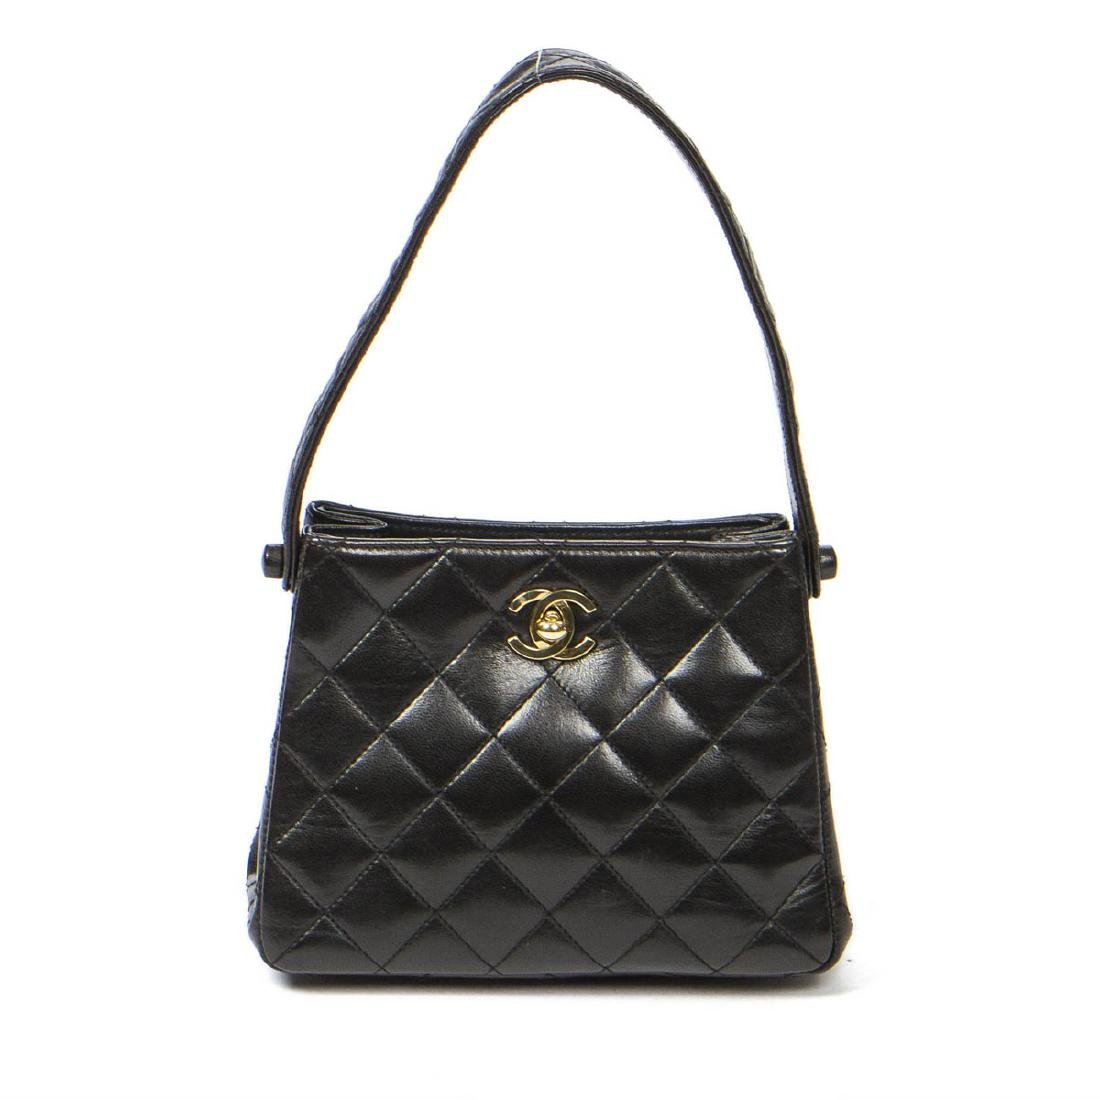 Chanel Small Handbag in Black Quilted leather - 5